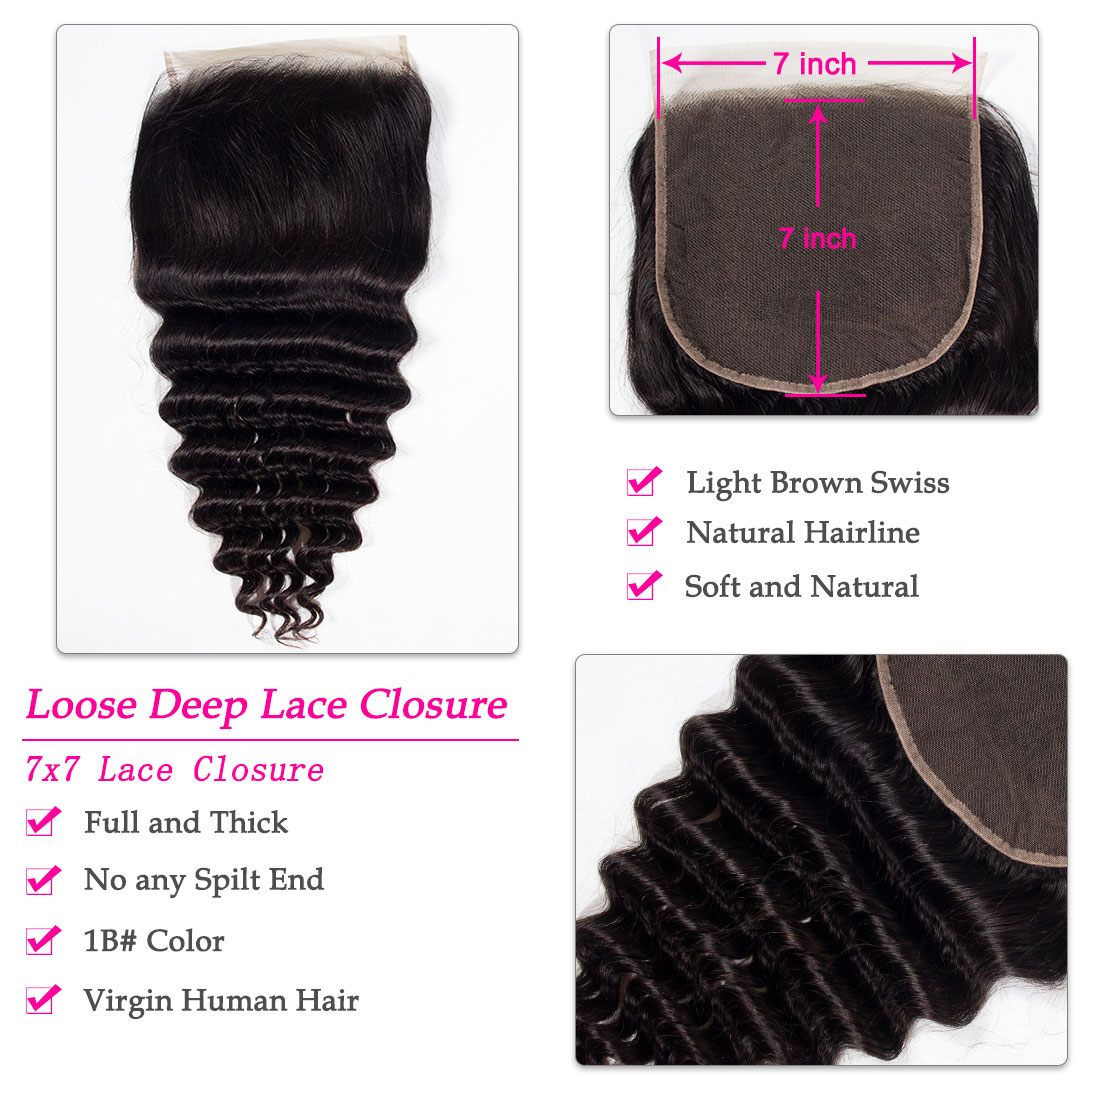 loose deep 7x7 lace closure